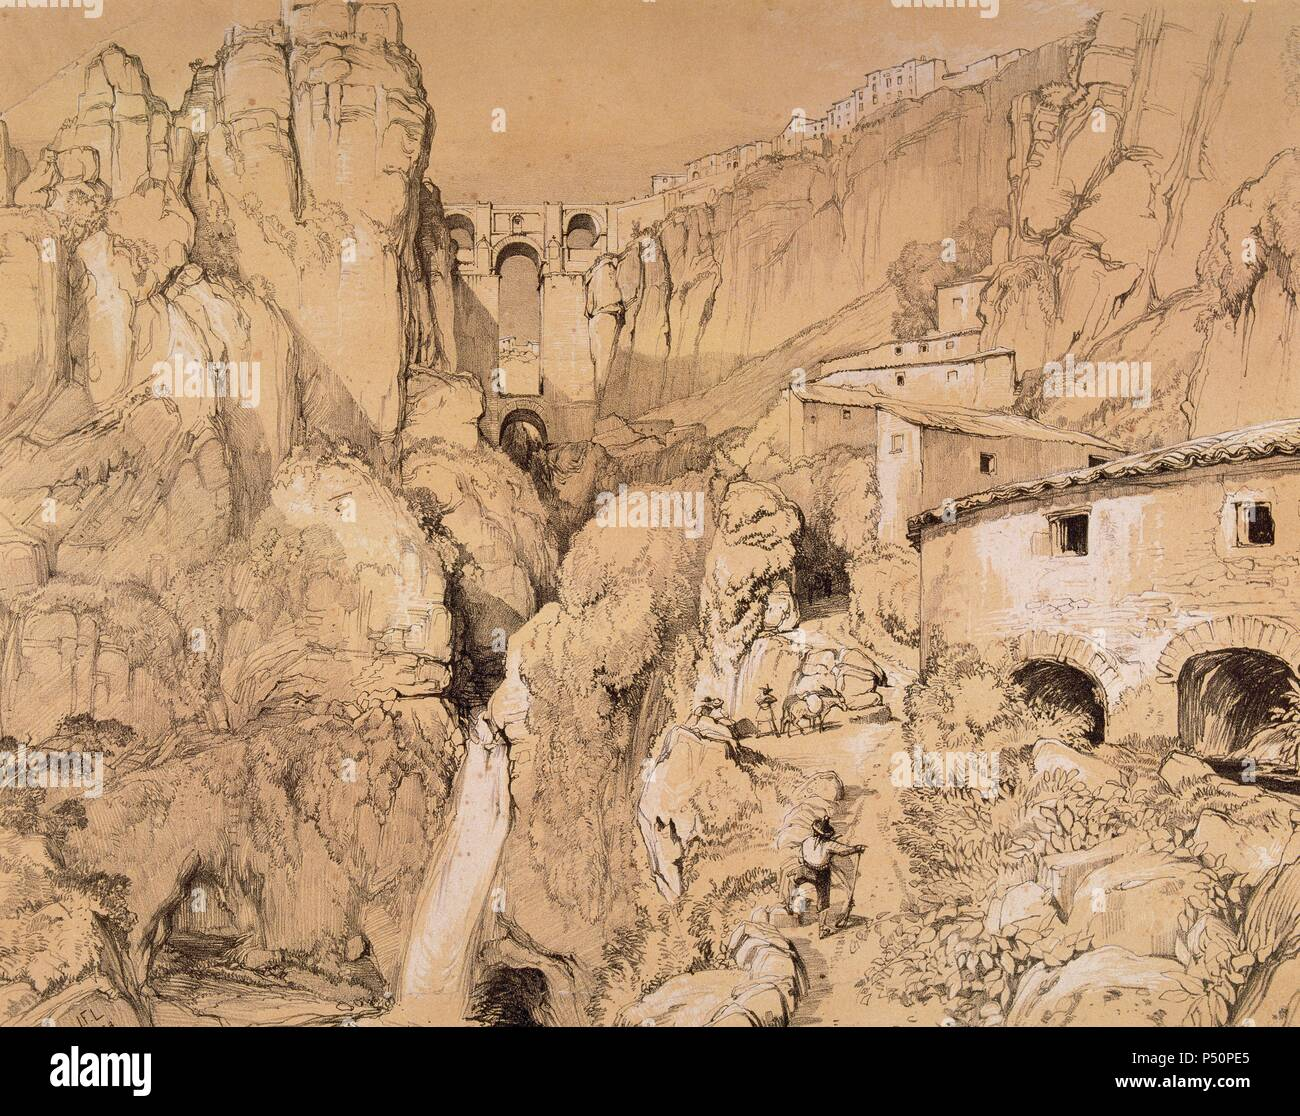 Spain. Ronda. The New Bridge at The Tajo Canyon. Litography by John Frederick Lewis. London, 1834. - Stock Image